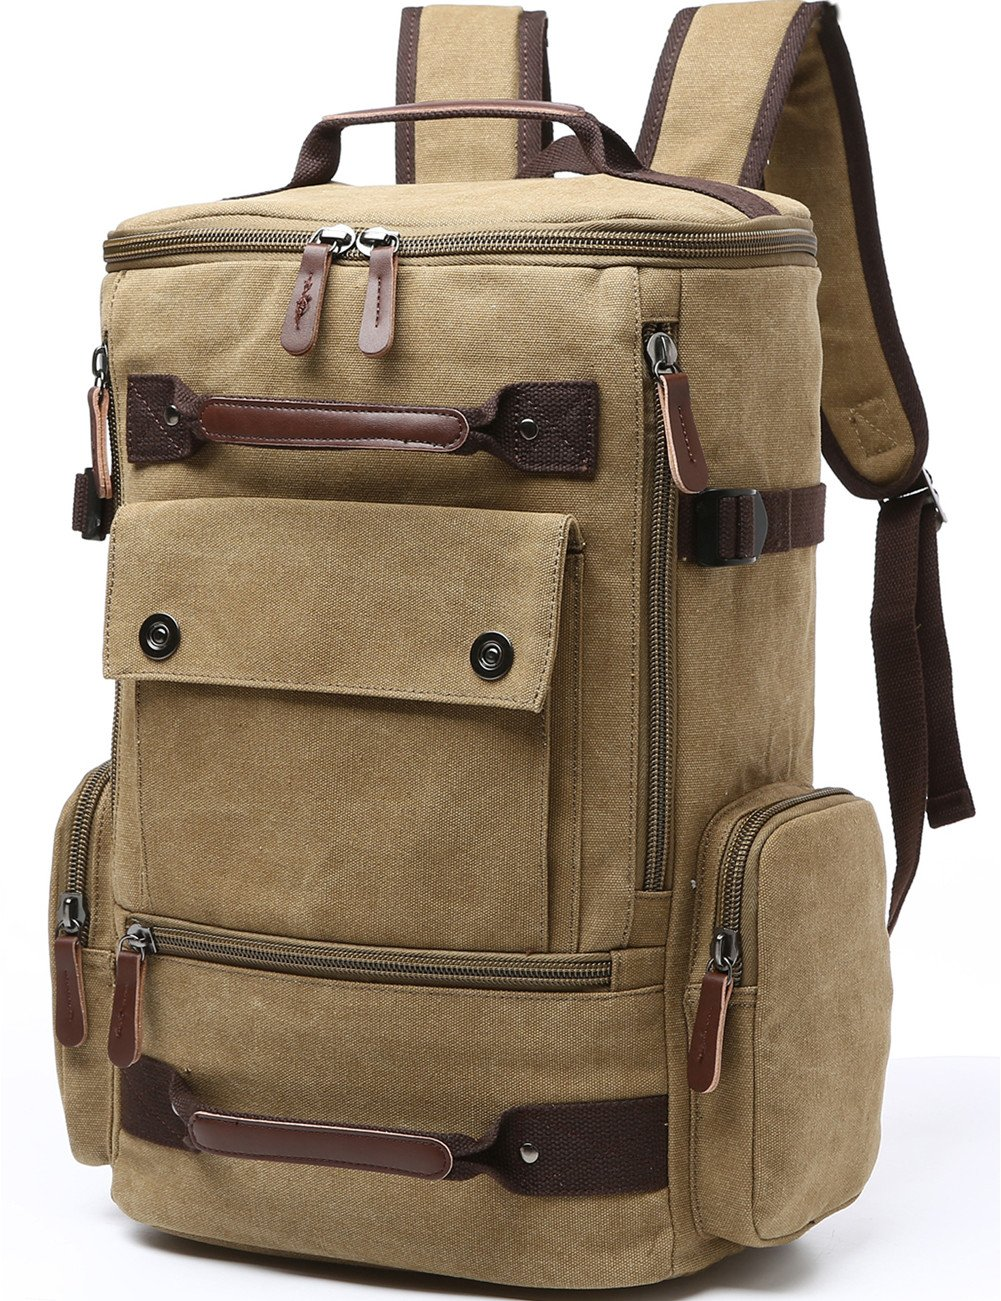 Canvas Backpack, Aidonger Vintage Canvas School Backpack Hiking Travel Rucksack Fits 15'' Laptop (Khaki)